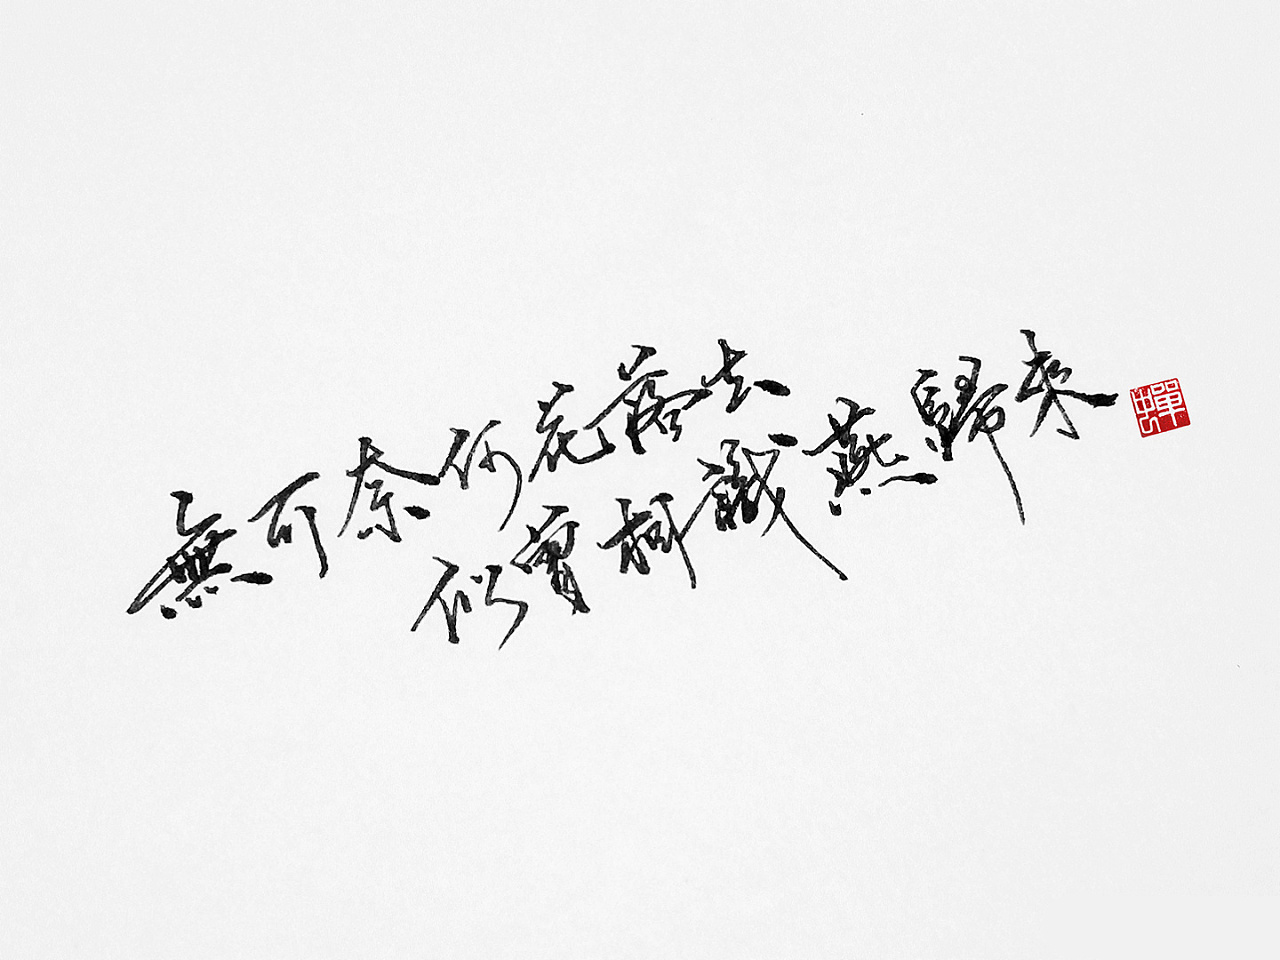 9P Appreciation of Handwritten Chinese Character Font Style #.2